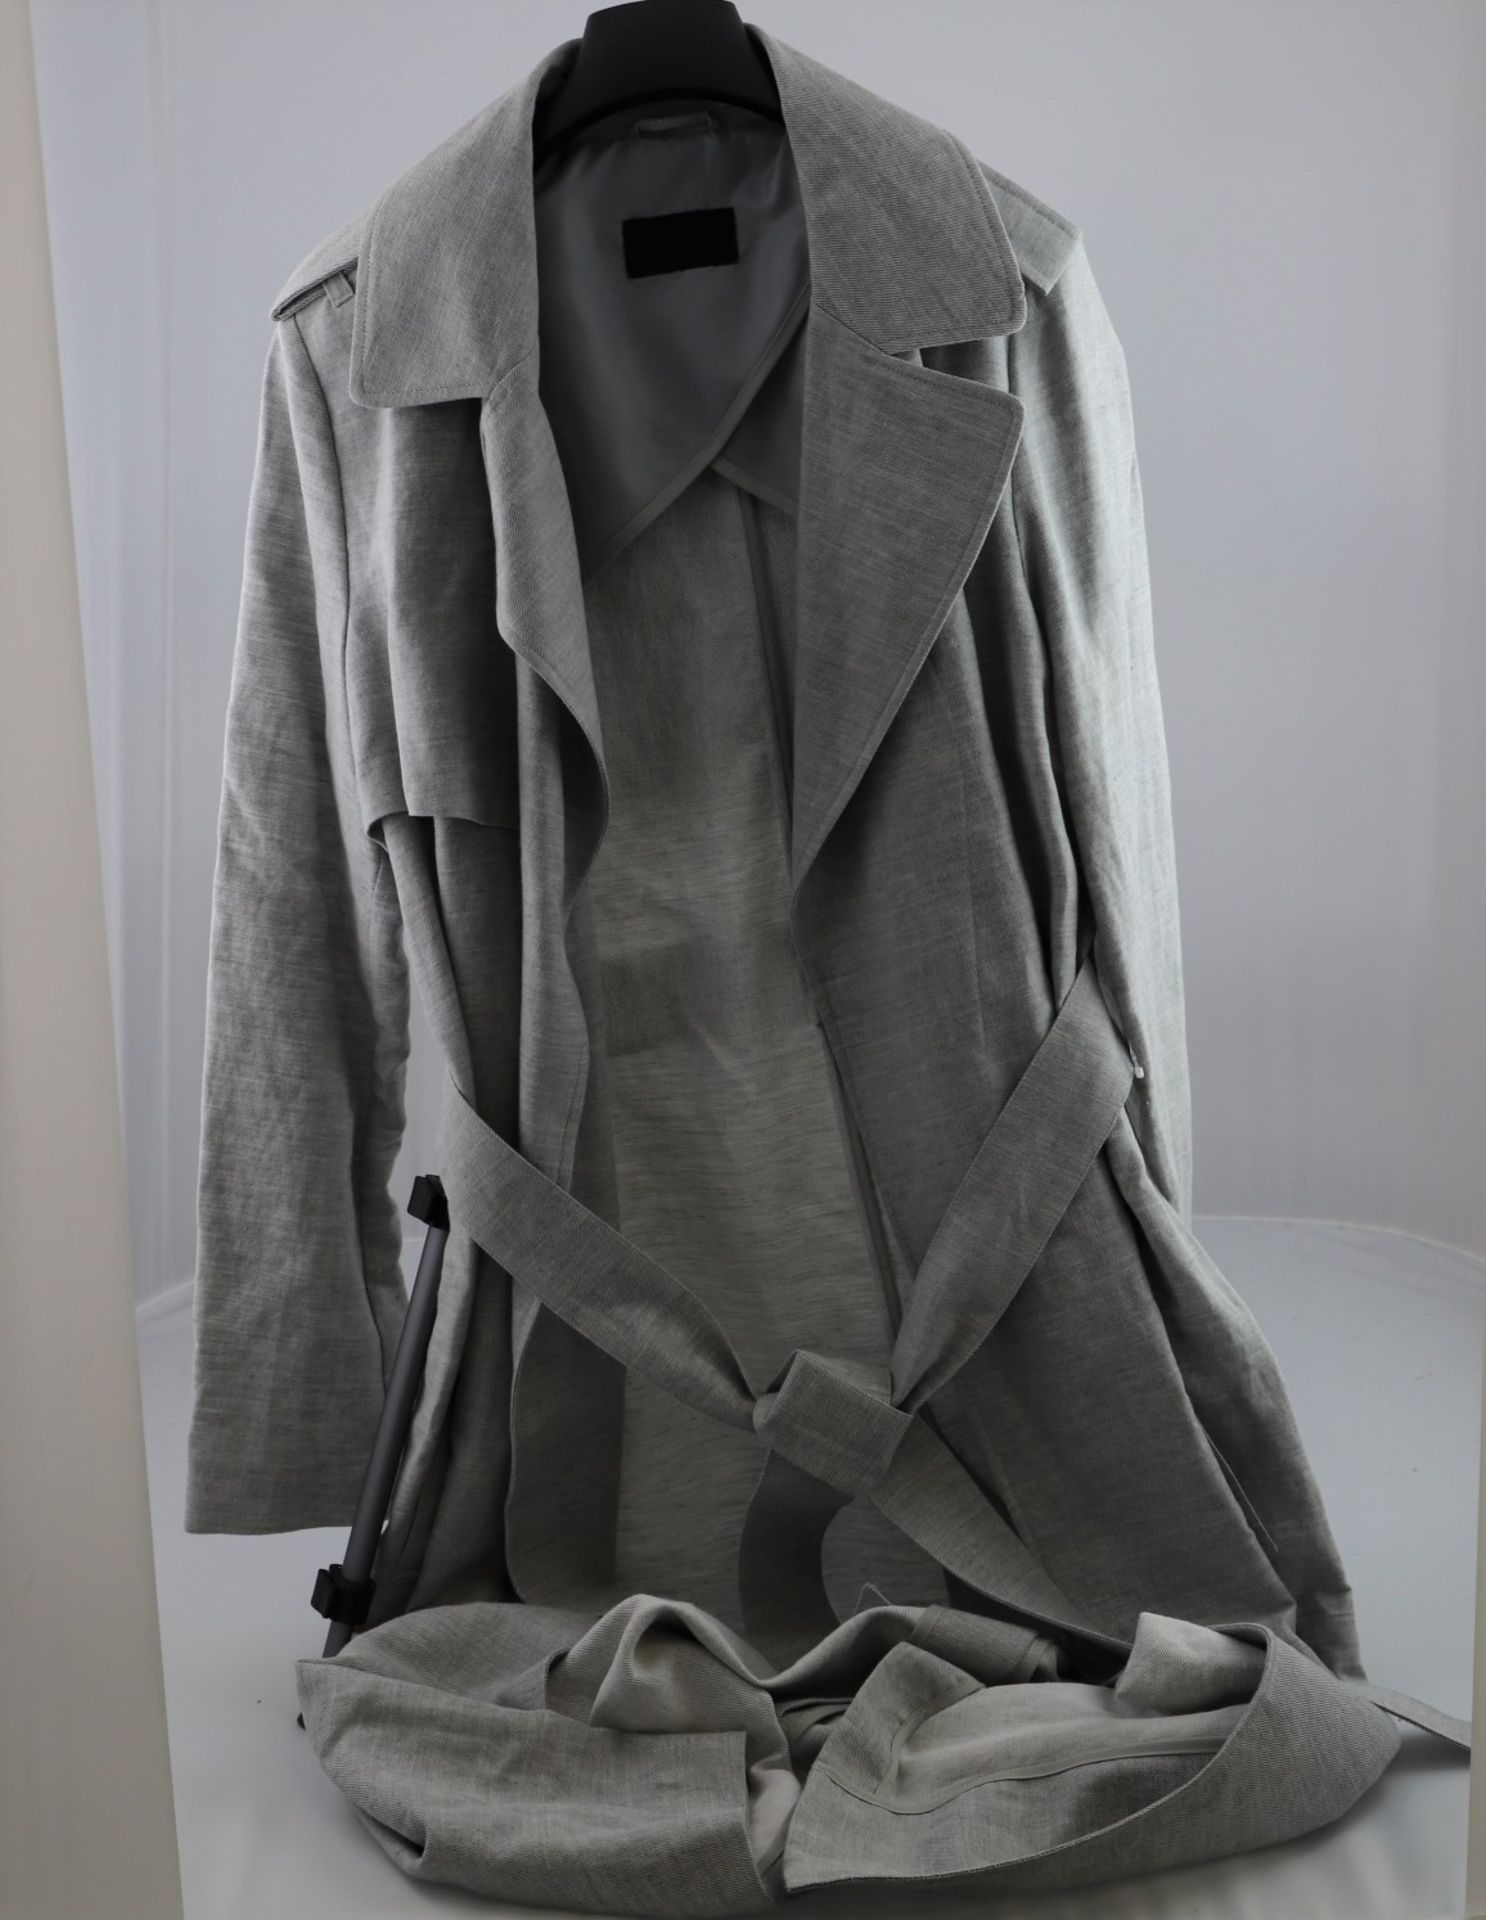 1 x mixed pallet = 235 items of Grade A M&S Womenswear Clothing. Total RRP £5345.50 - Image 4 of 11